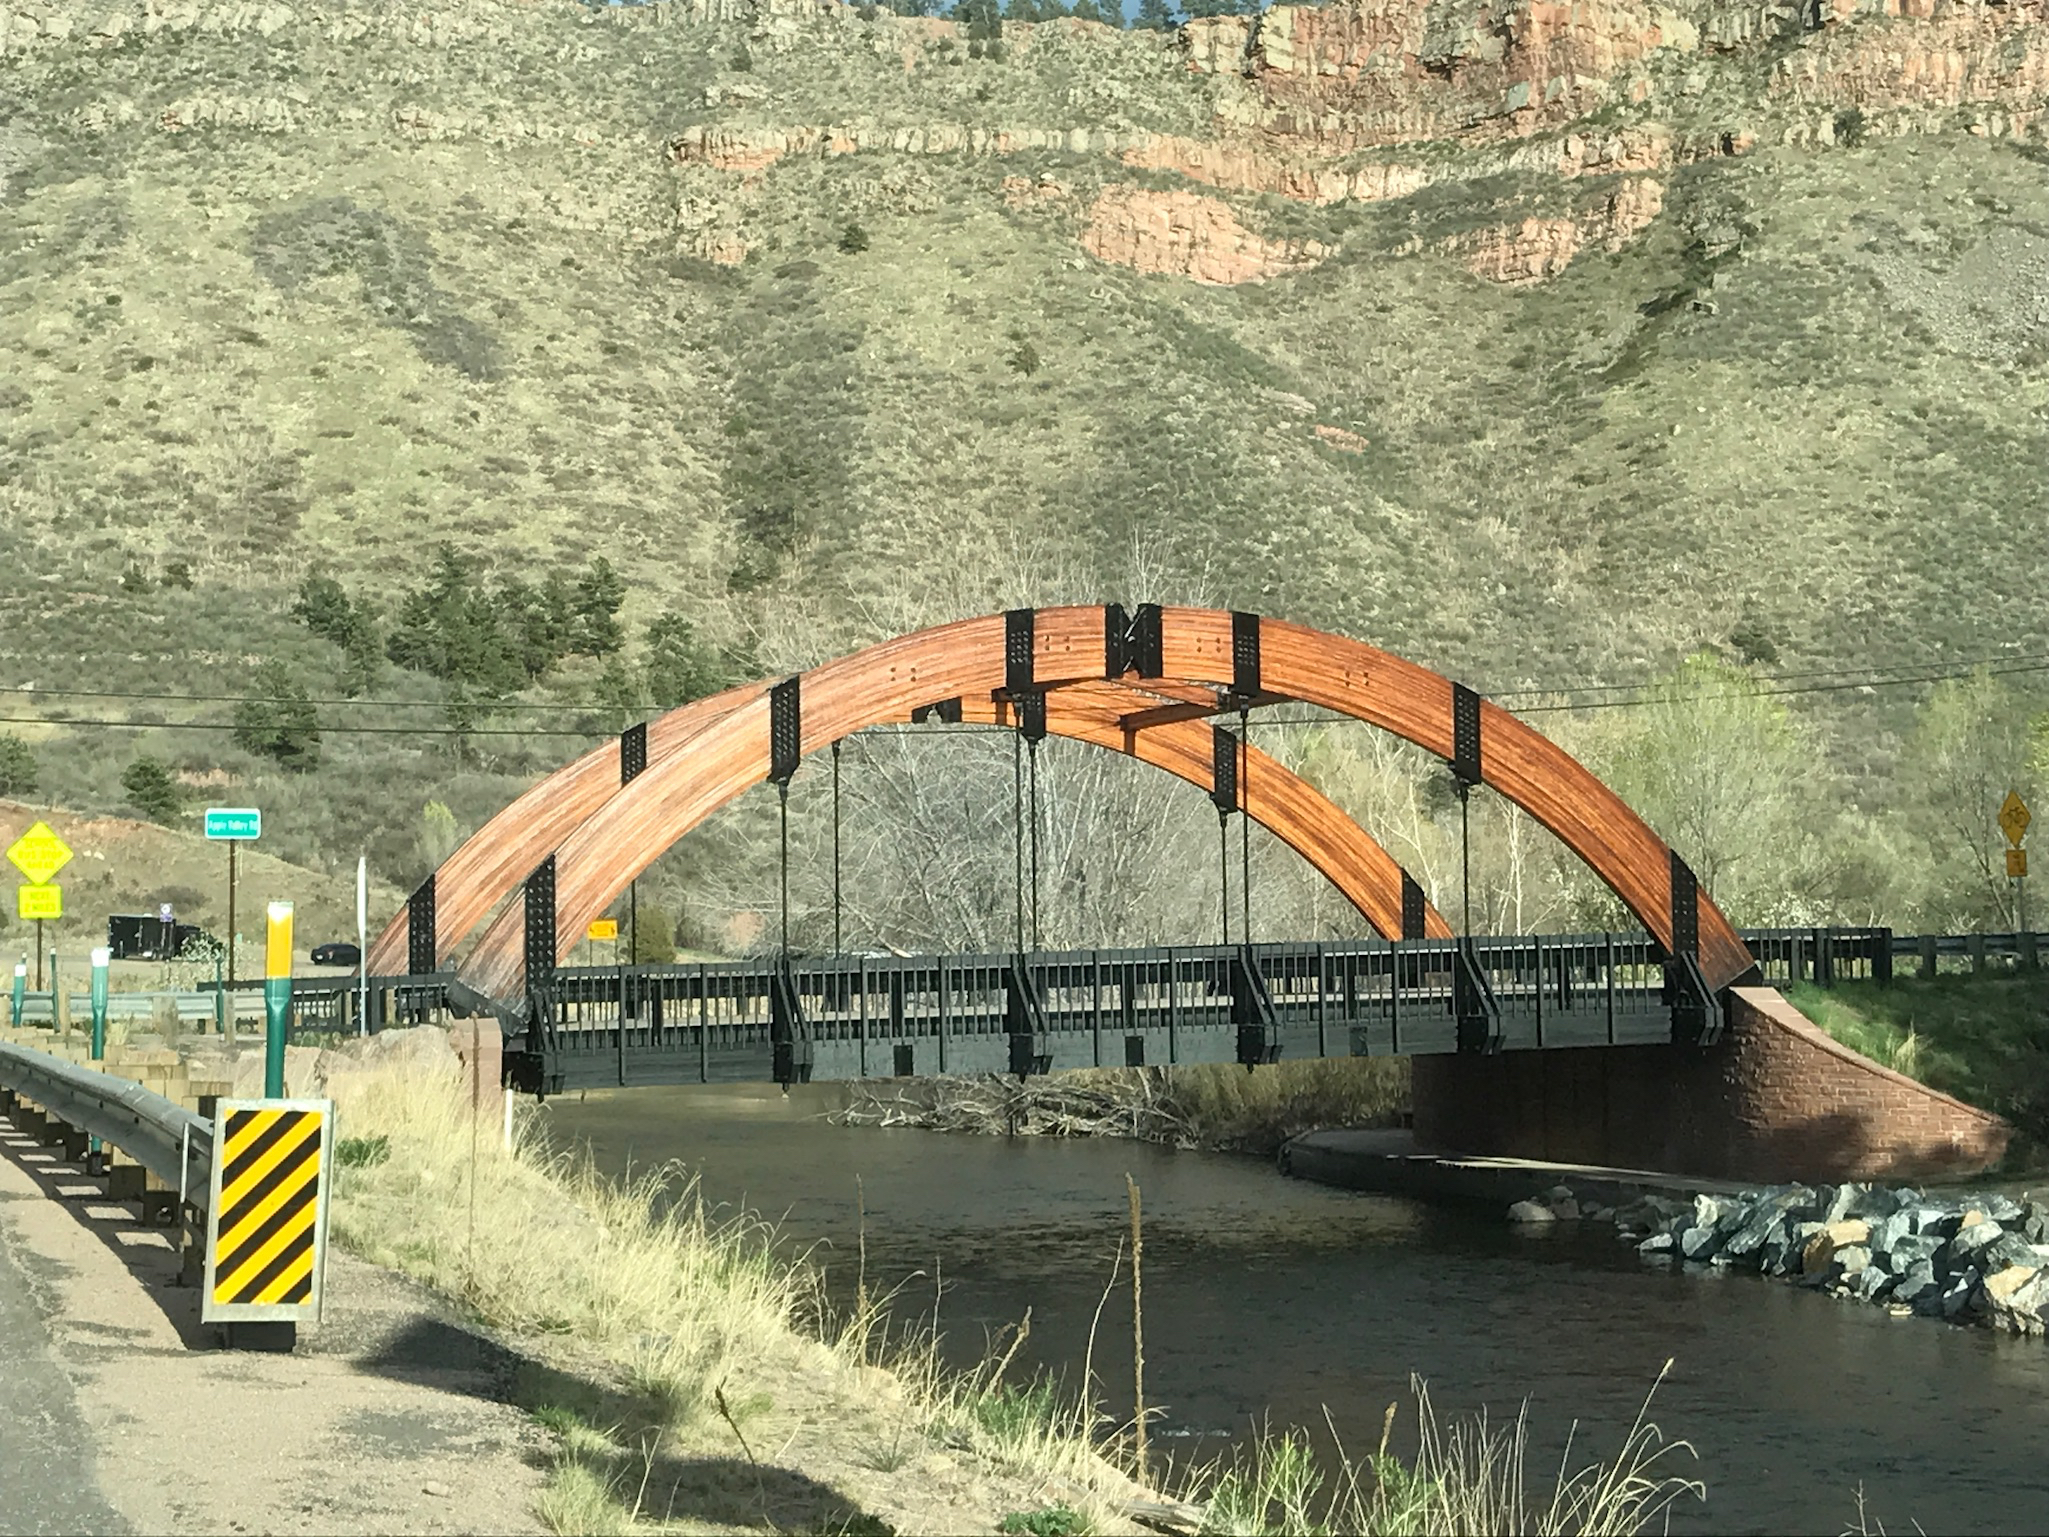 A cool looking bridge we took a picture of for our civil engineer friend